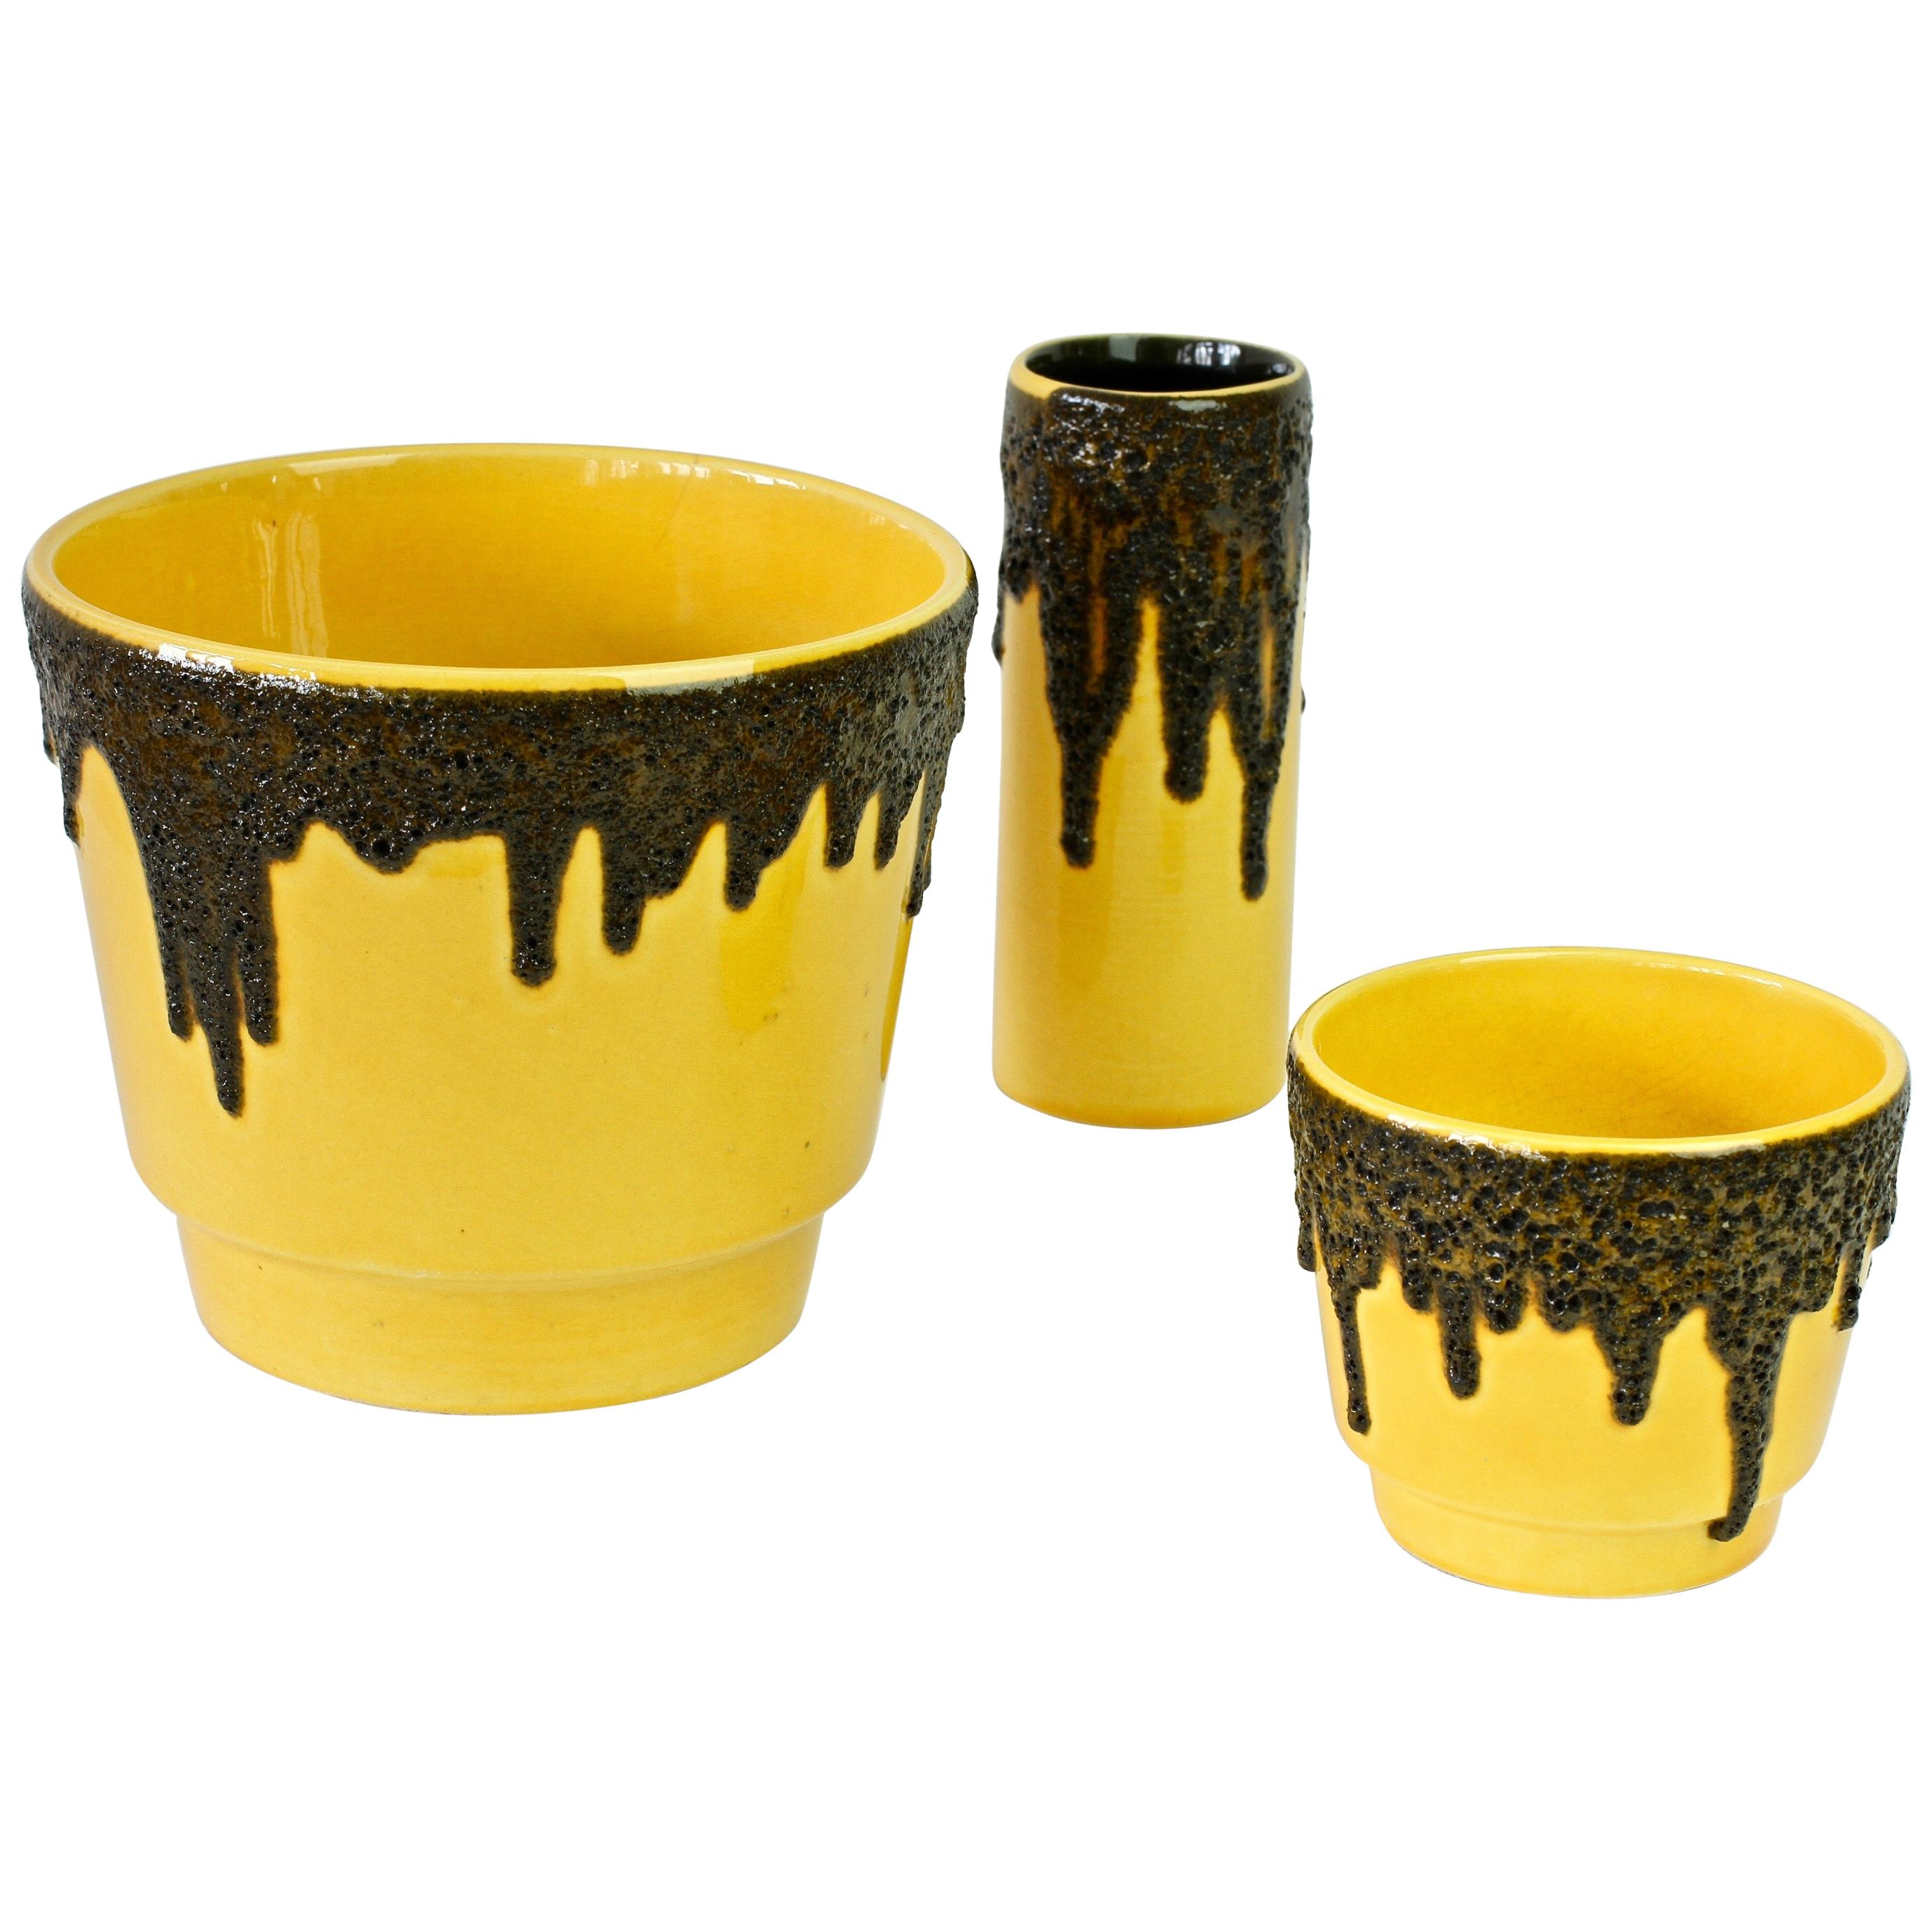 Vintage 1970s Bright Yellow West German Pottery Fohr Vase with Black Lava Glaze